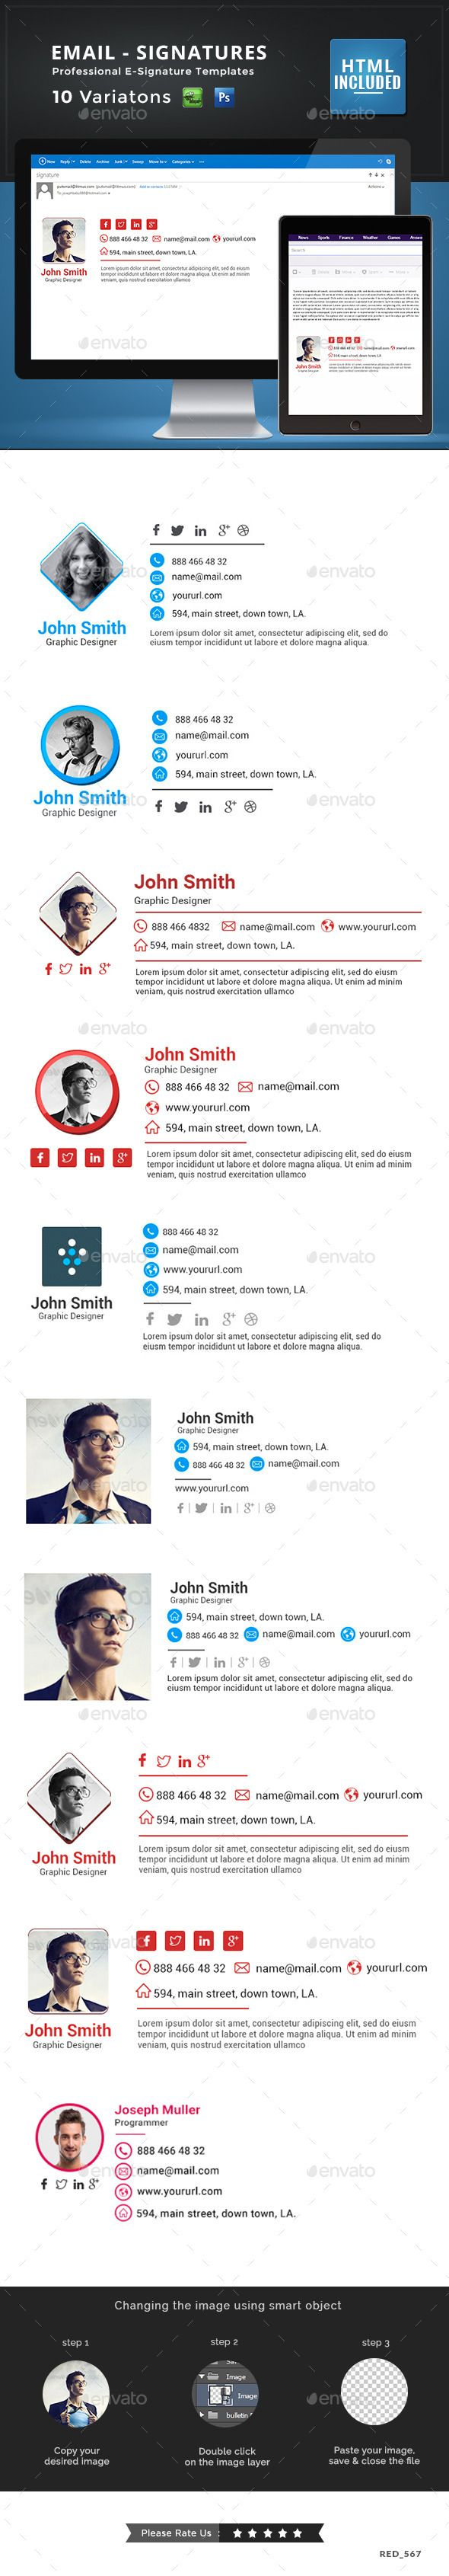 10 Email Signature Templates - HTML Files Included - Miscellaneous Web Elements                                                                                                                                                                                 Más